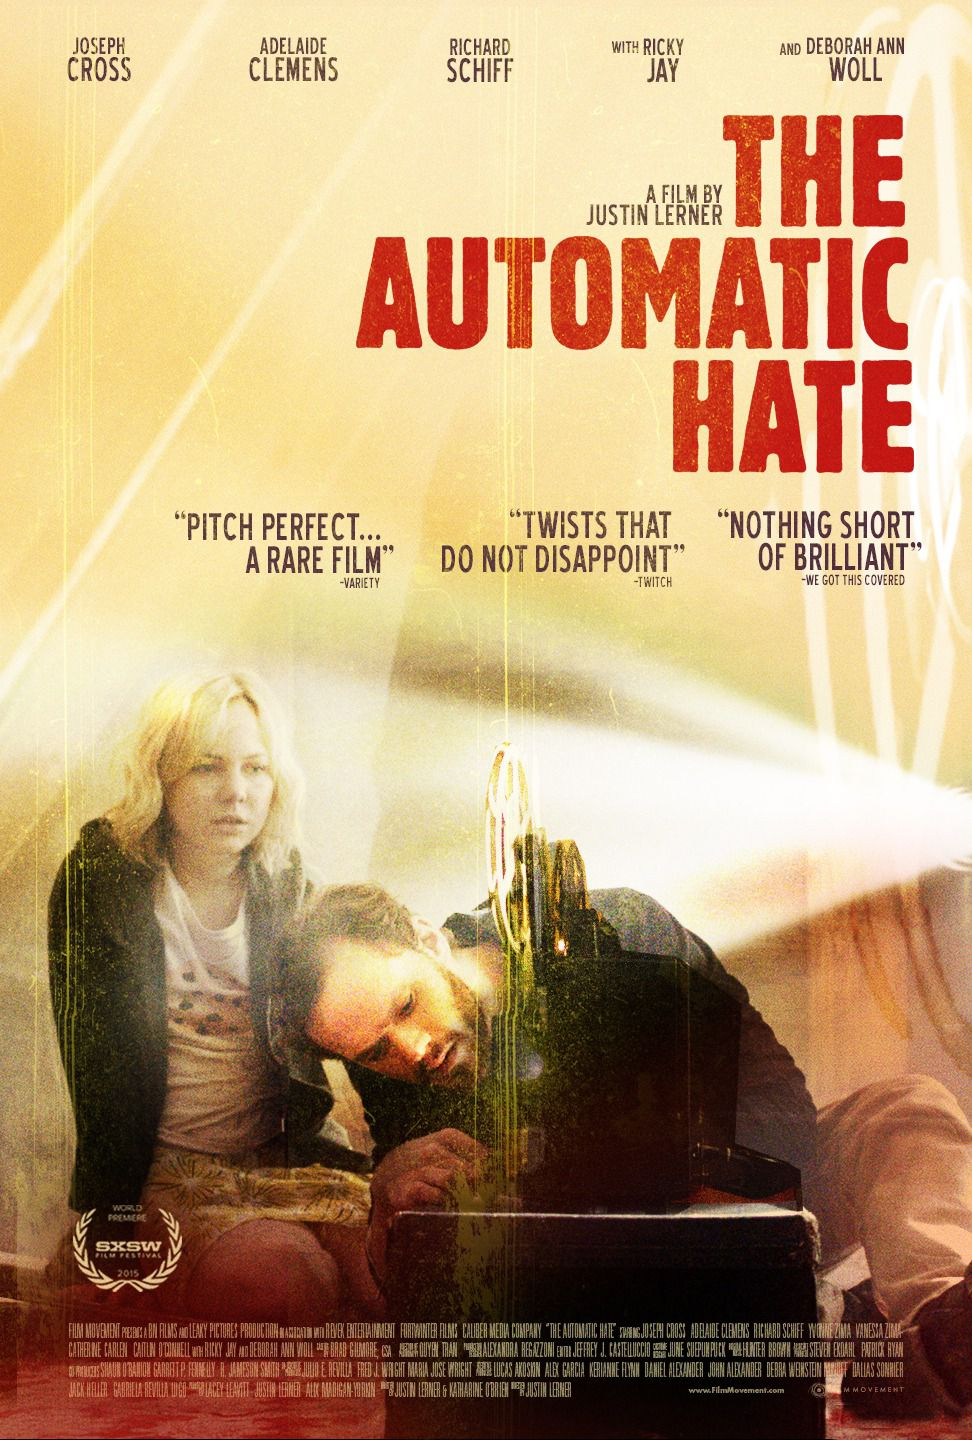 Automatic Hate by Justin Lerner - Cast: Joseph Cross, Adelaide Clemens film poster 2016